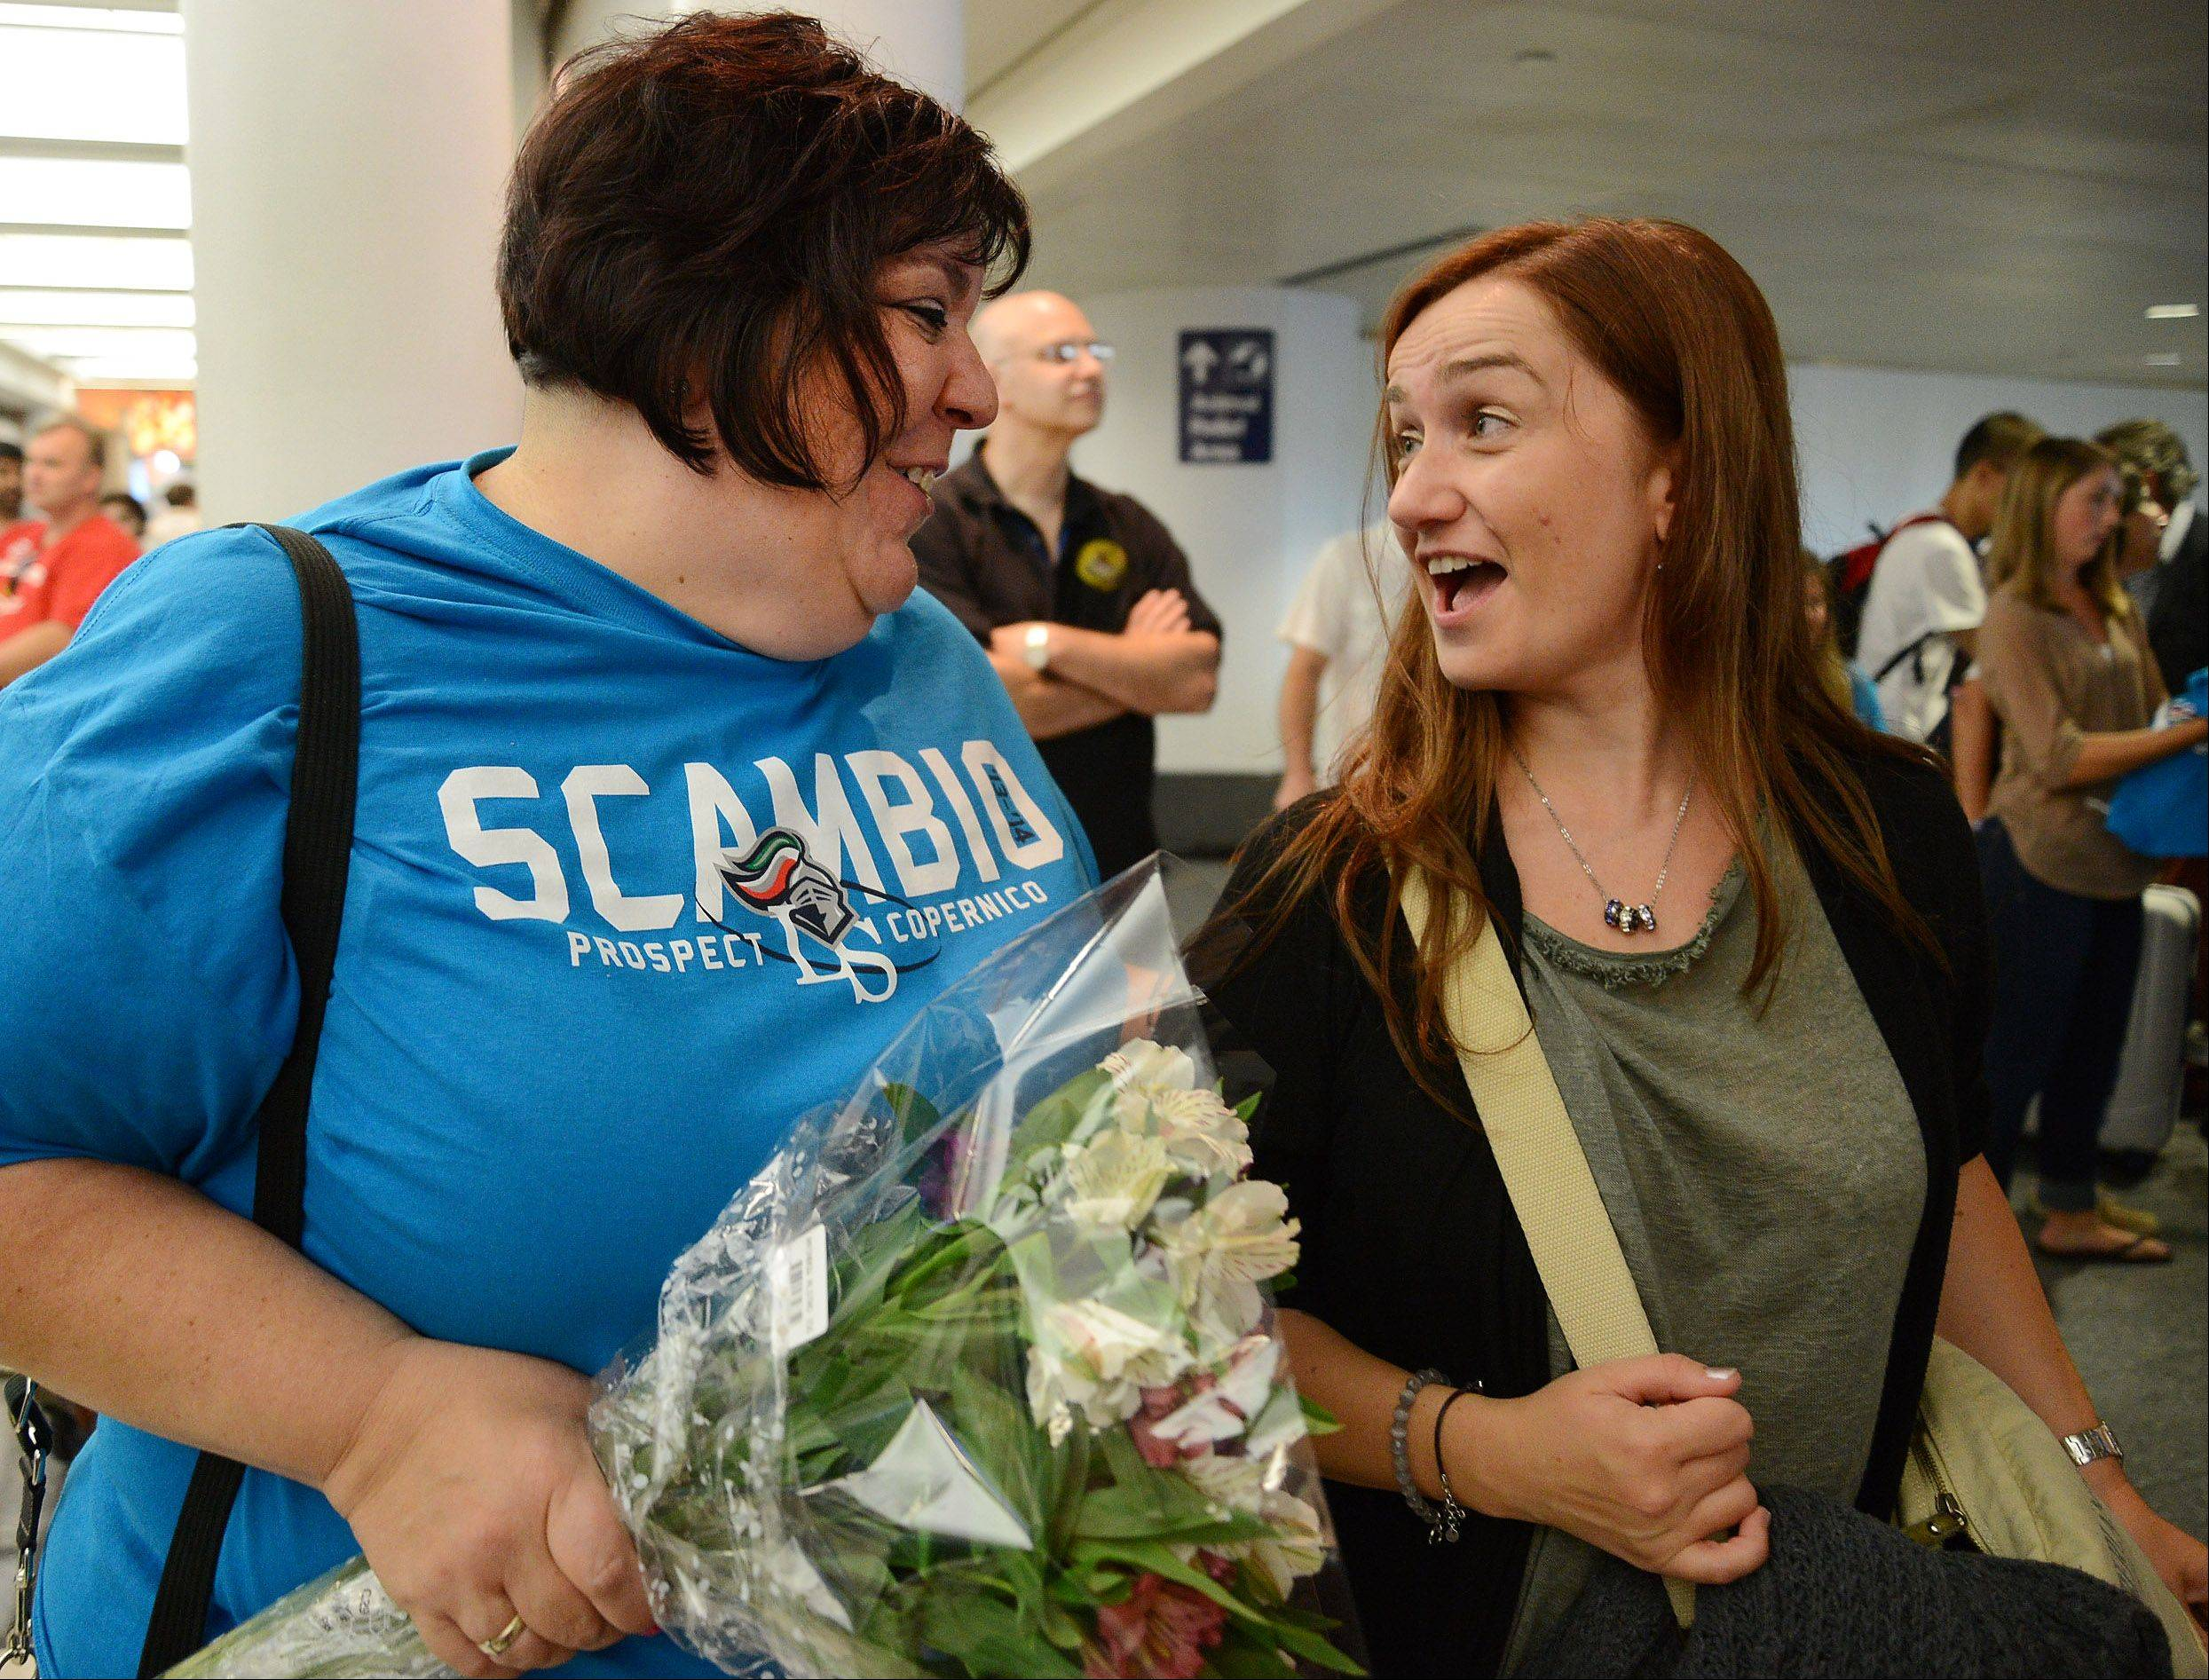 Lyn Scolaro, left, meets her Italian counterpart, math and physics teacher Alessandra Martinelli, as Italian students arrive at O'Hare Thursday for a week's visit.